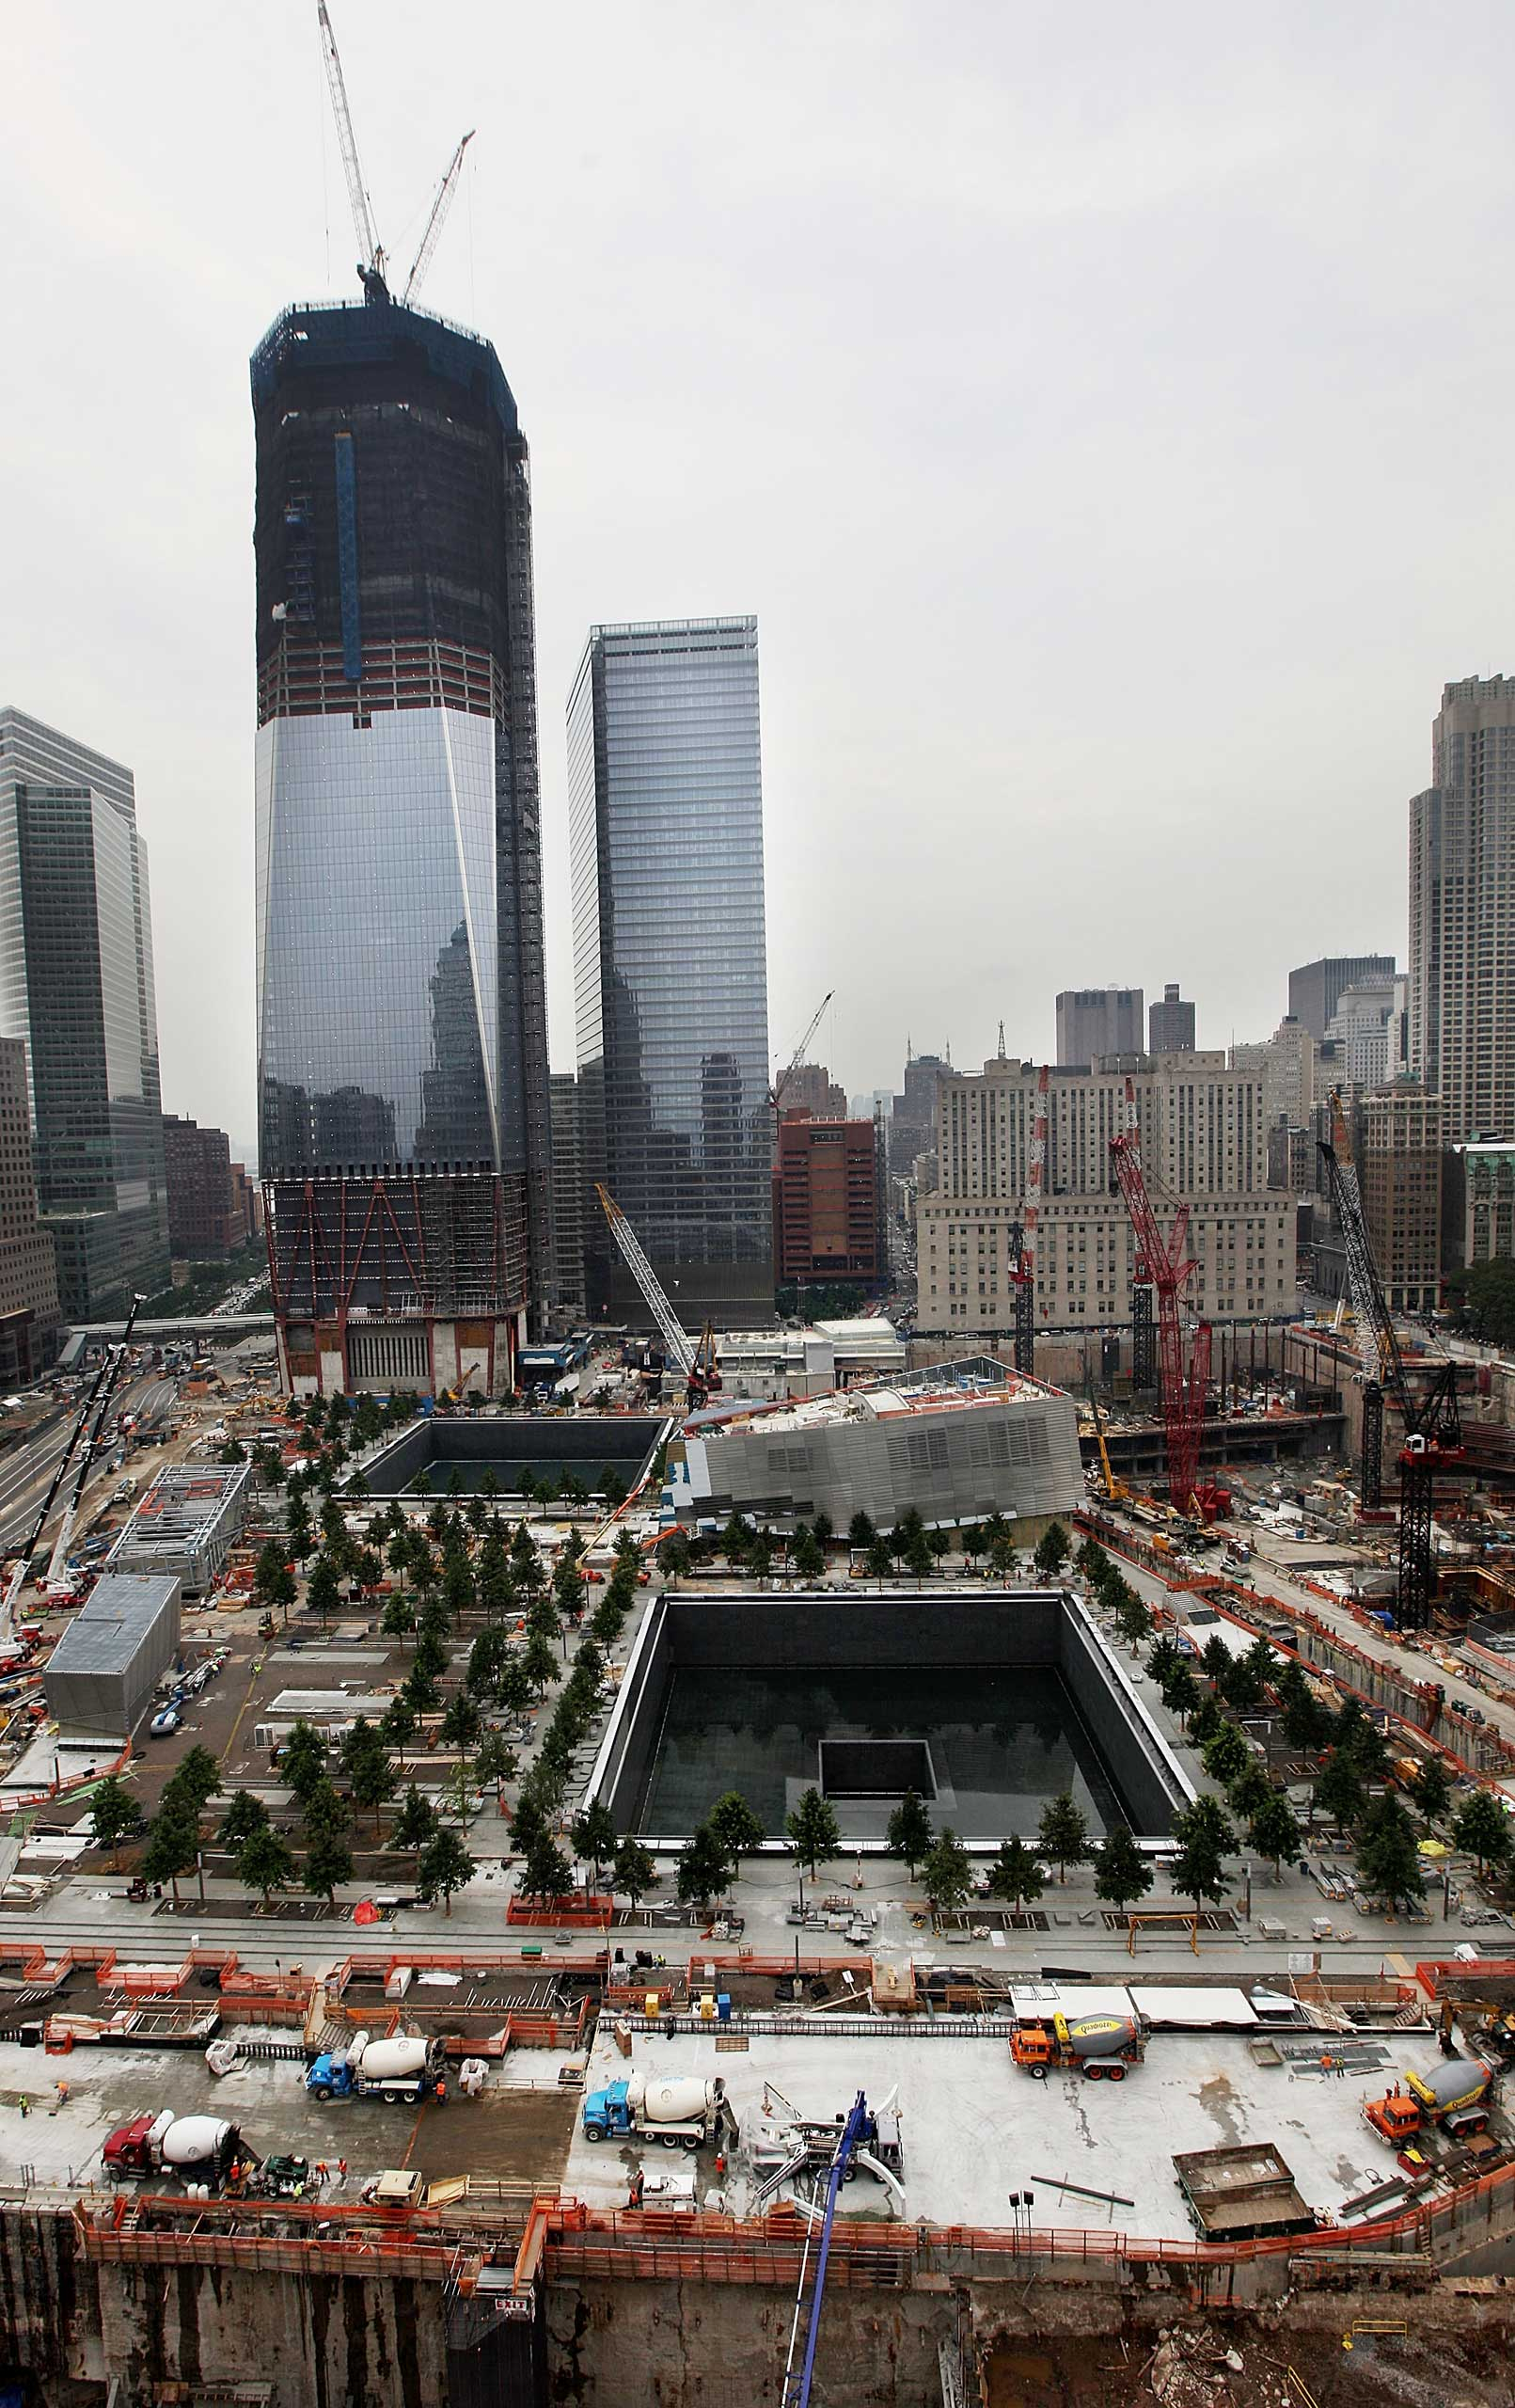 2011 Construction continues on One World Trade Center and the National Sept. 11 Memorial & Museum at the World Trade Center site on July 8, 2011.